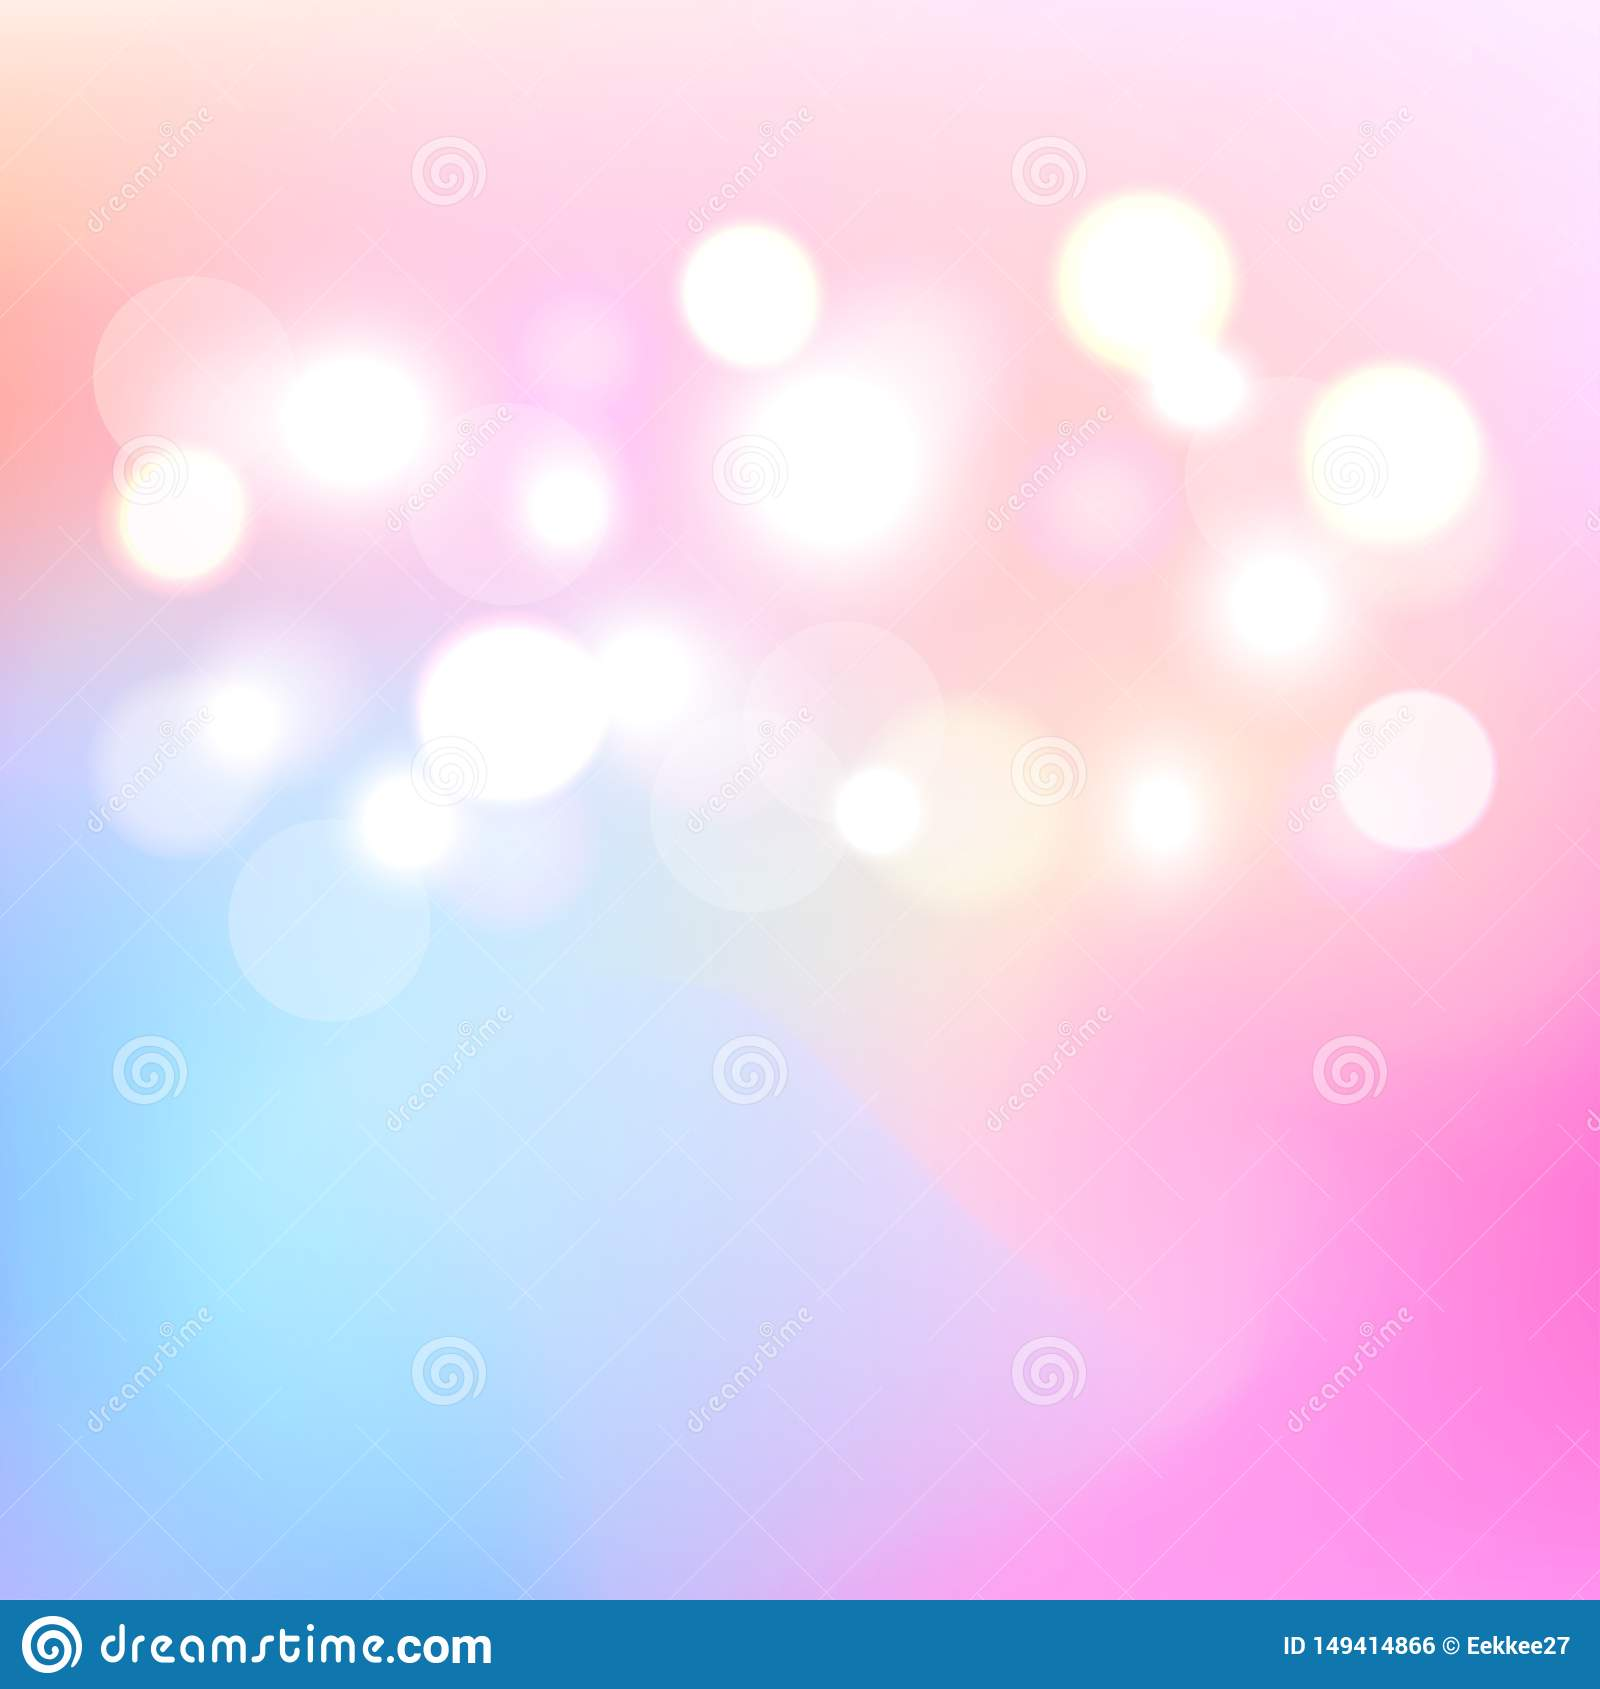 Bokeh colorful light abstract background. Blurry light a backdrop.Vector. Illustration.